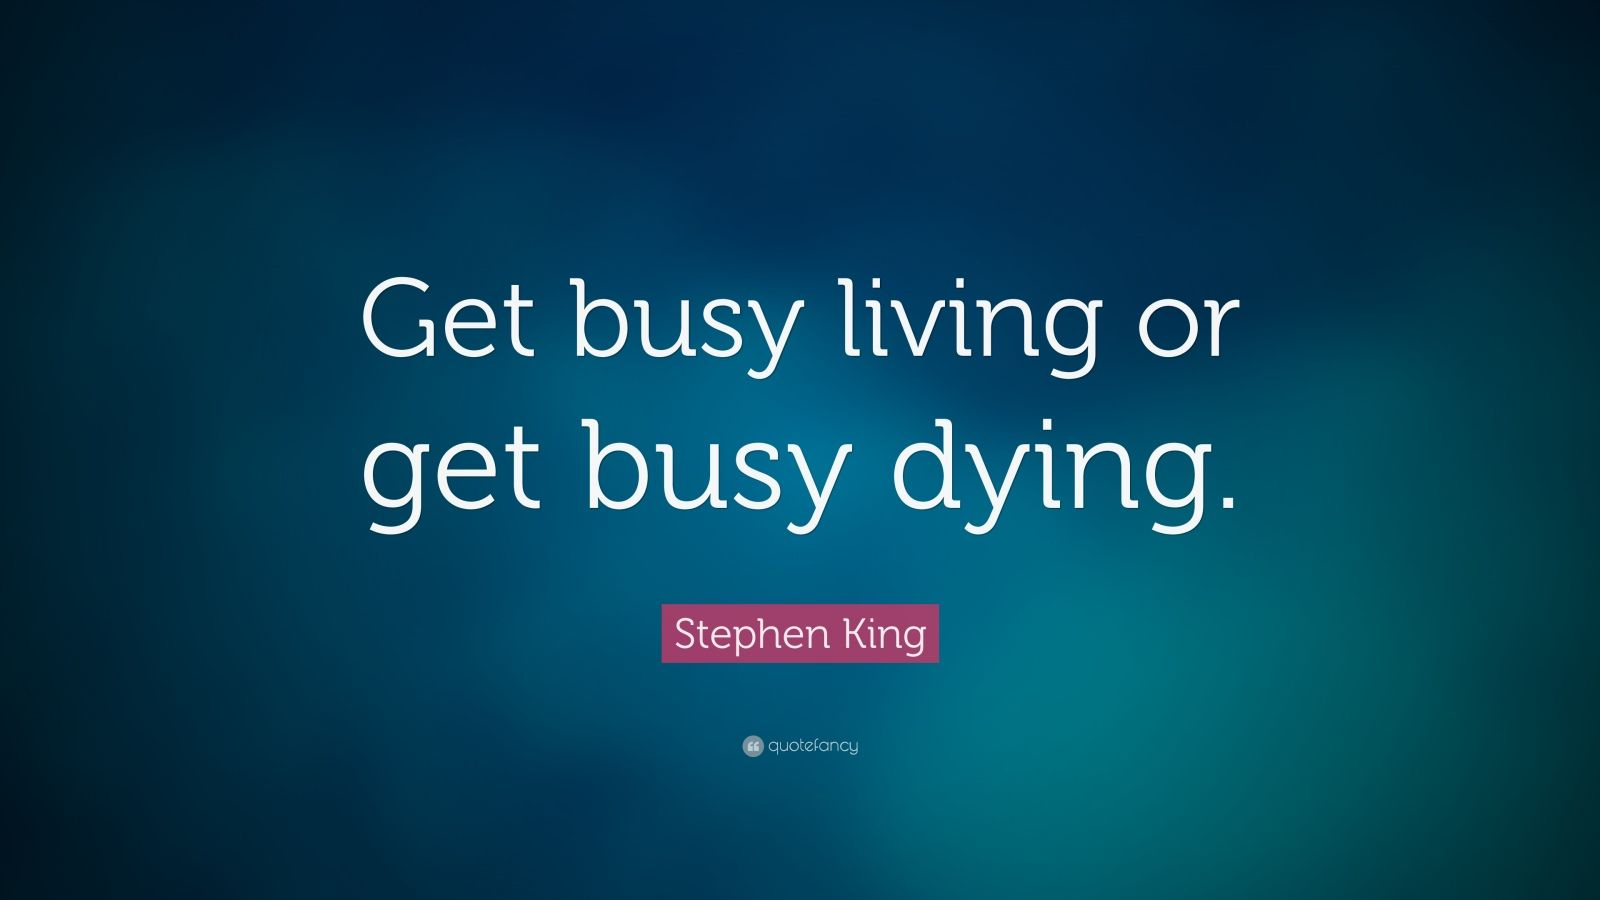 Dream Quotes Wallpaper Stephen King Quote Get Busy Living Or Get Busy Dying